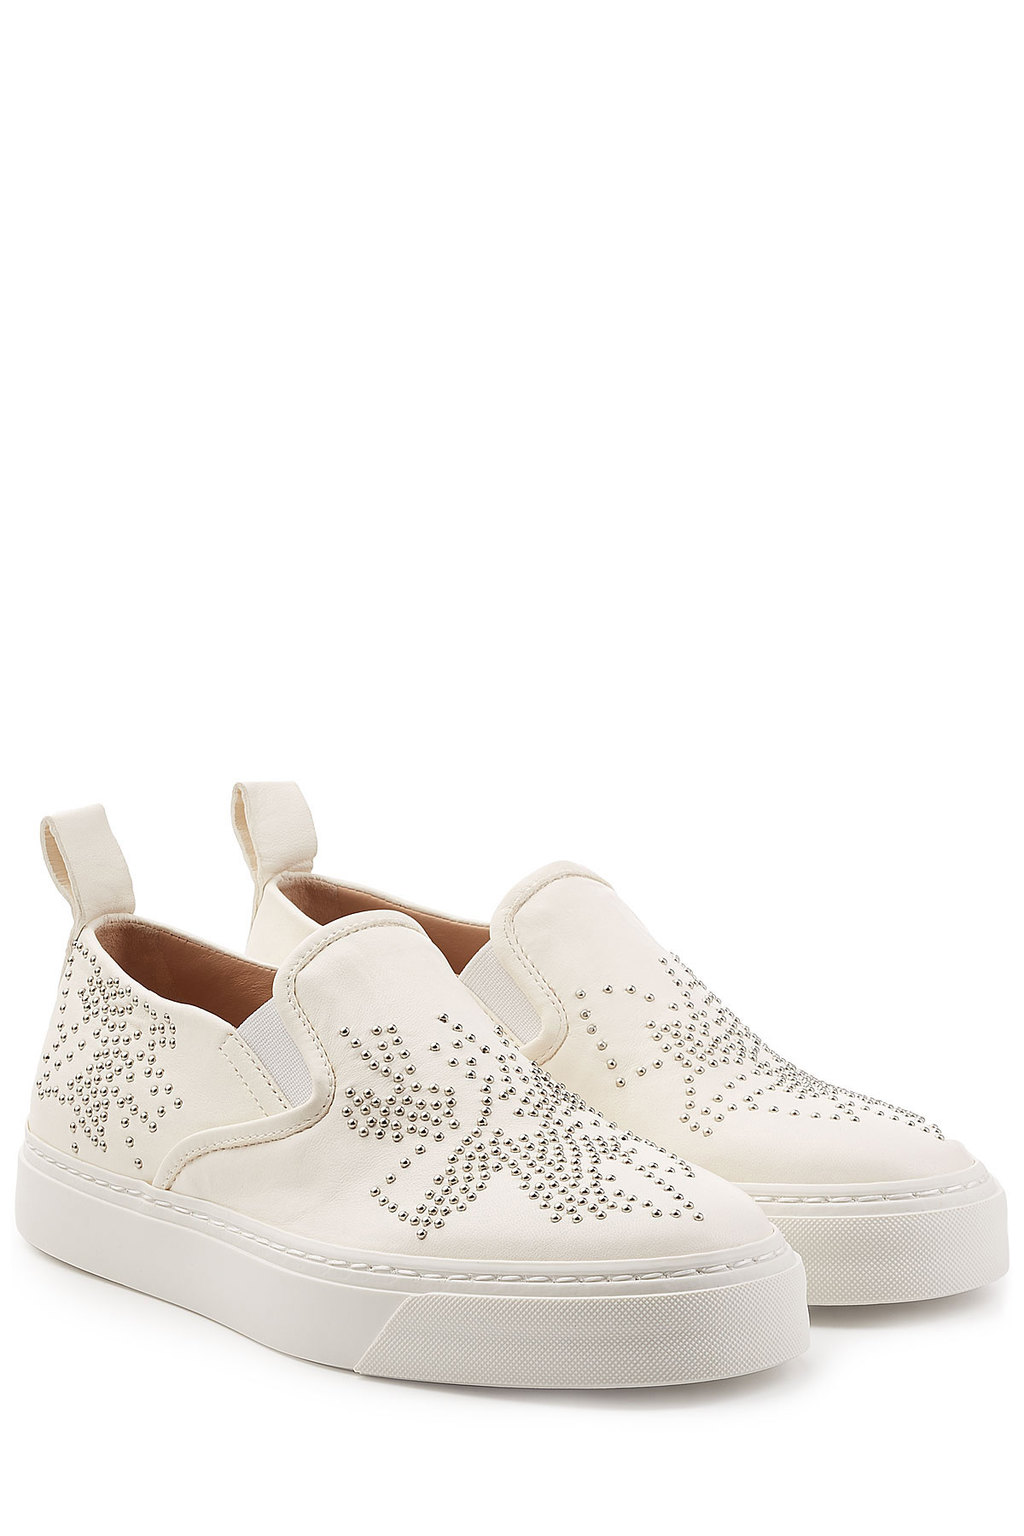 Embellished Leather Slip On Sneakers White - predominant colour: white; occasions: casual; material: leather; heel height: flat; embellishment: jewels/stone; toe: round toe; style: trainers; finish: plain; pattern: plain; season: s/s 2016